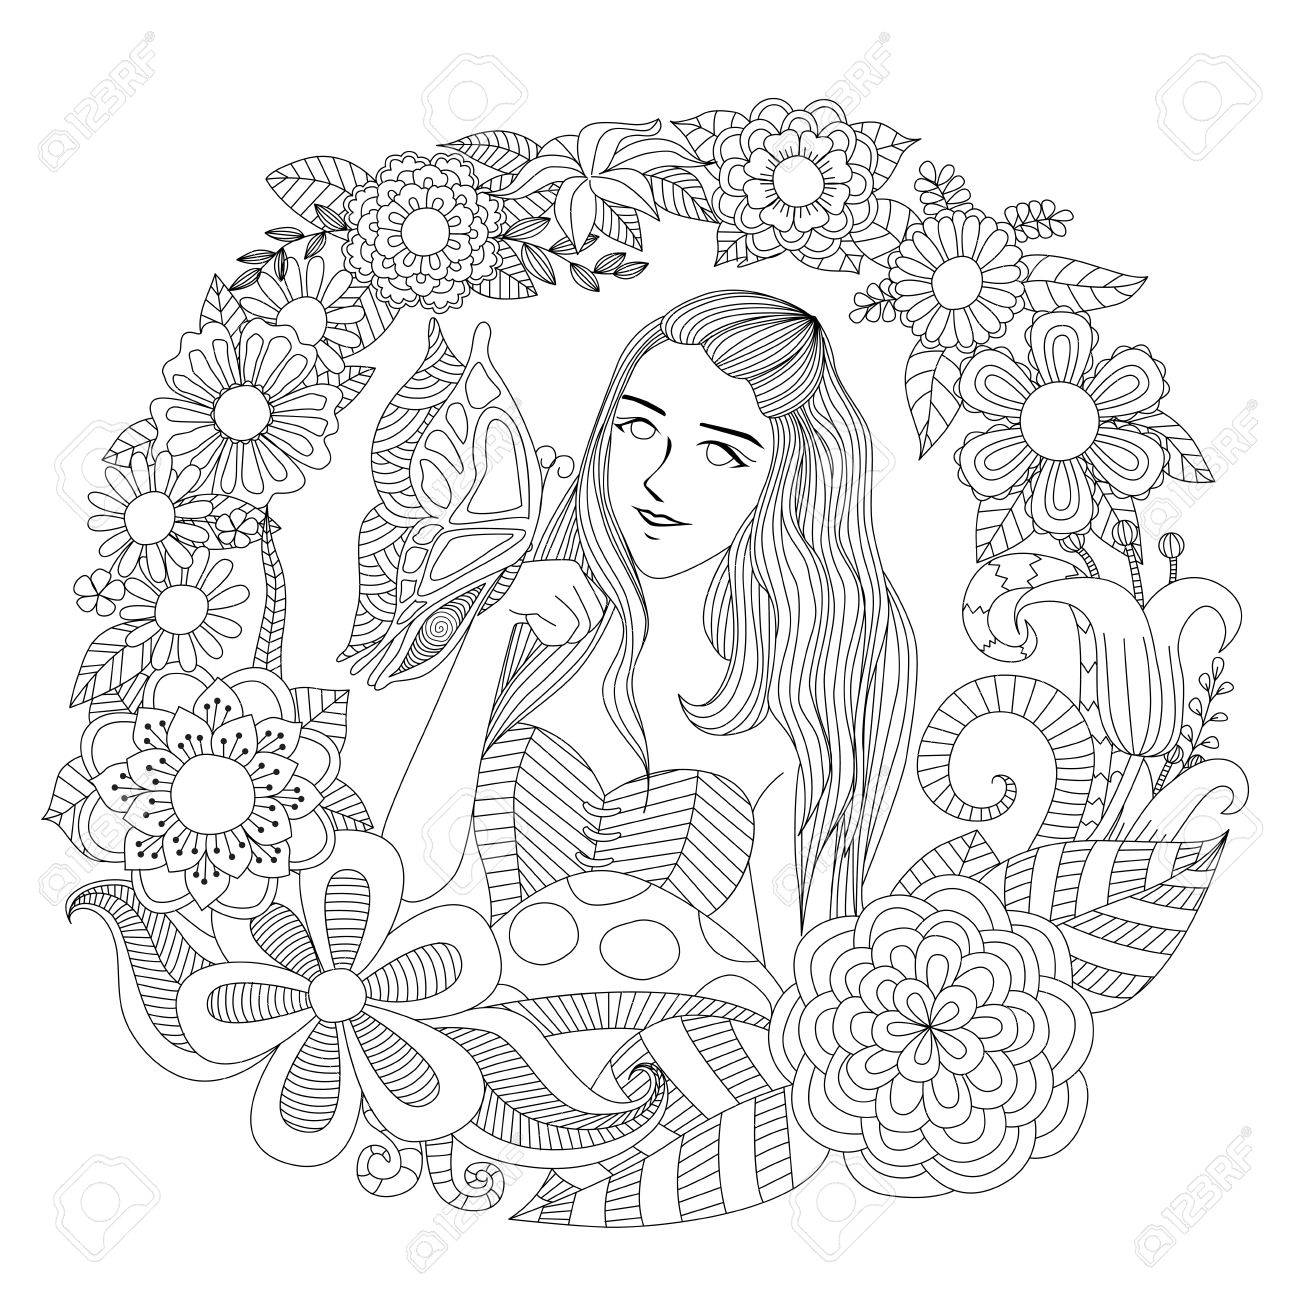 Girl in the flower garden coloring page